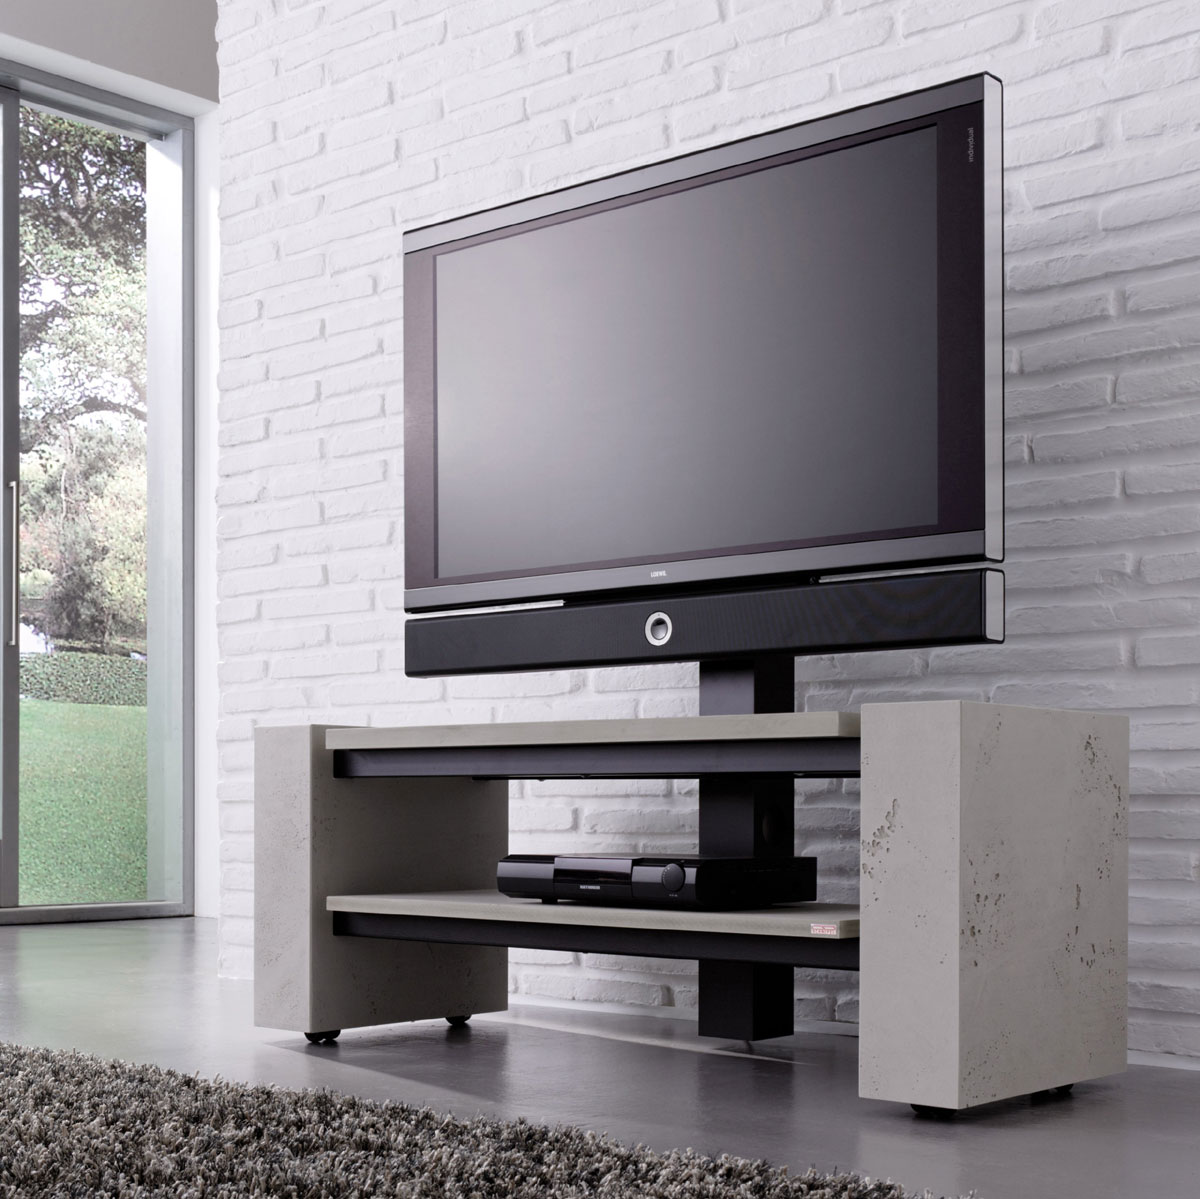 hifi racks archive tv m bel und hifi m bel guide. Black Bedroom Furniture Sets. Home Design Ideas